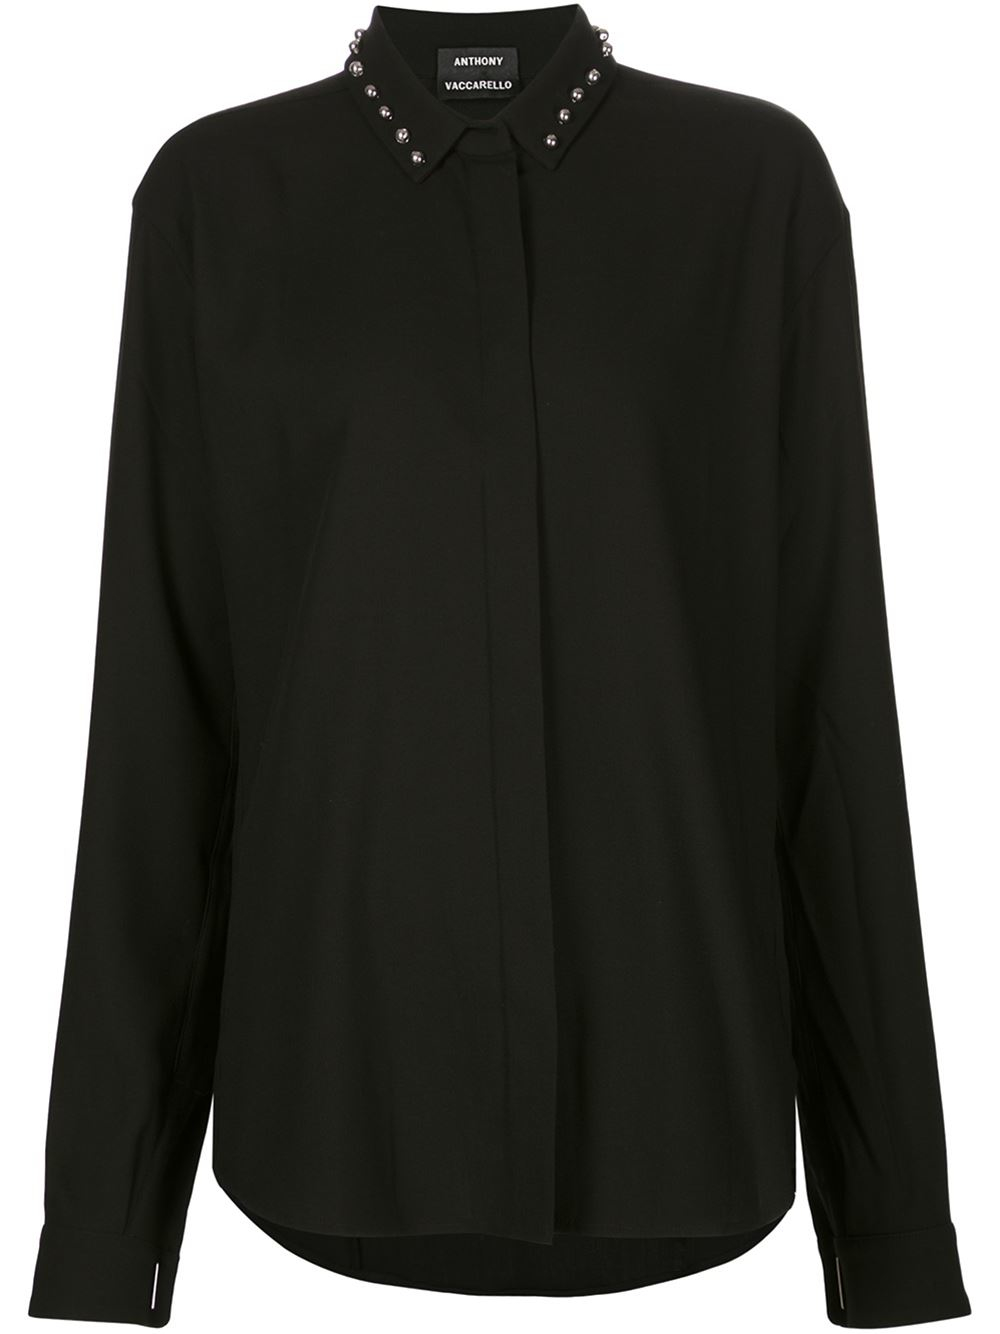 Anthony vaccarello studded collar shirt in black lyst for Tony collar dress shirt